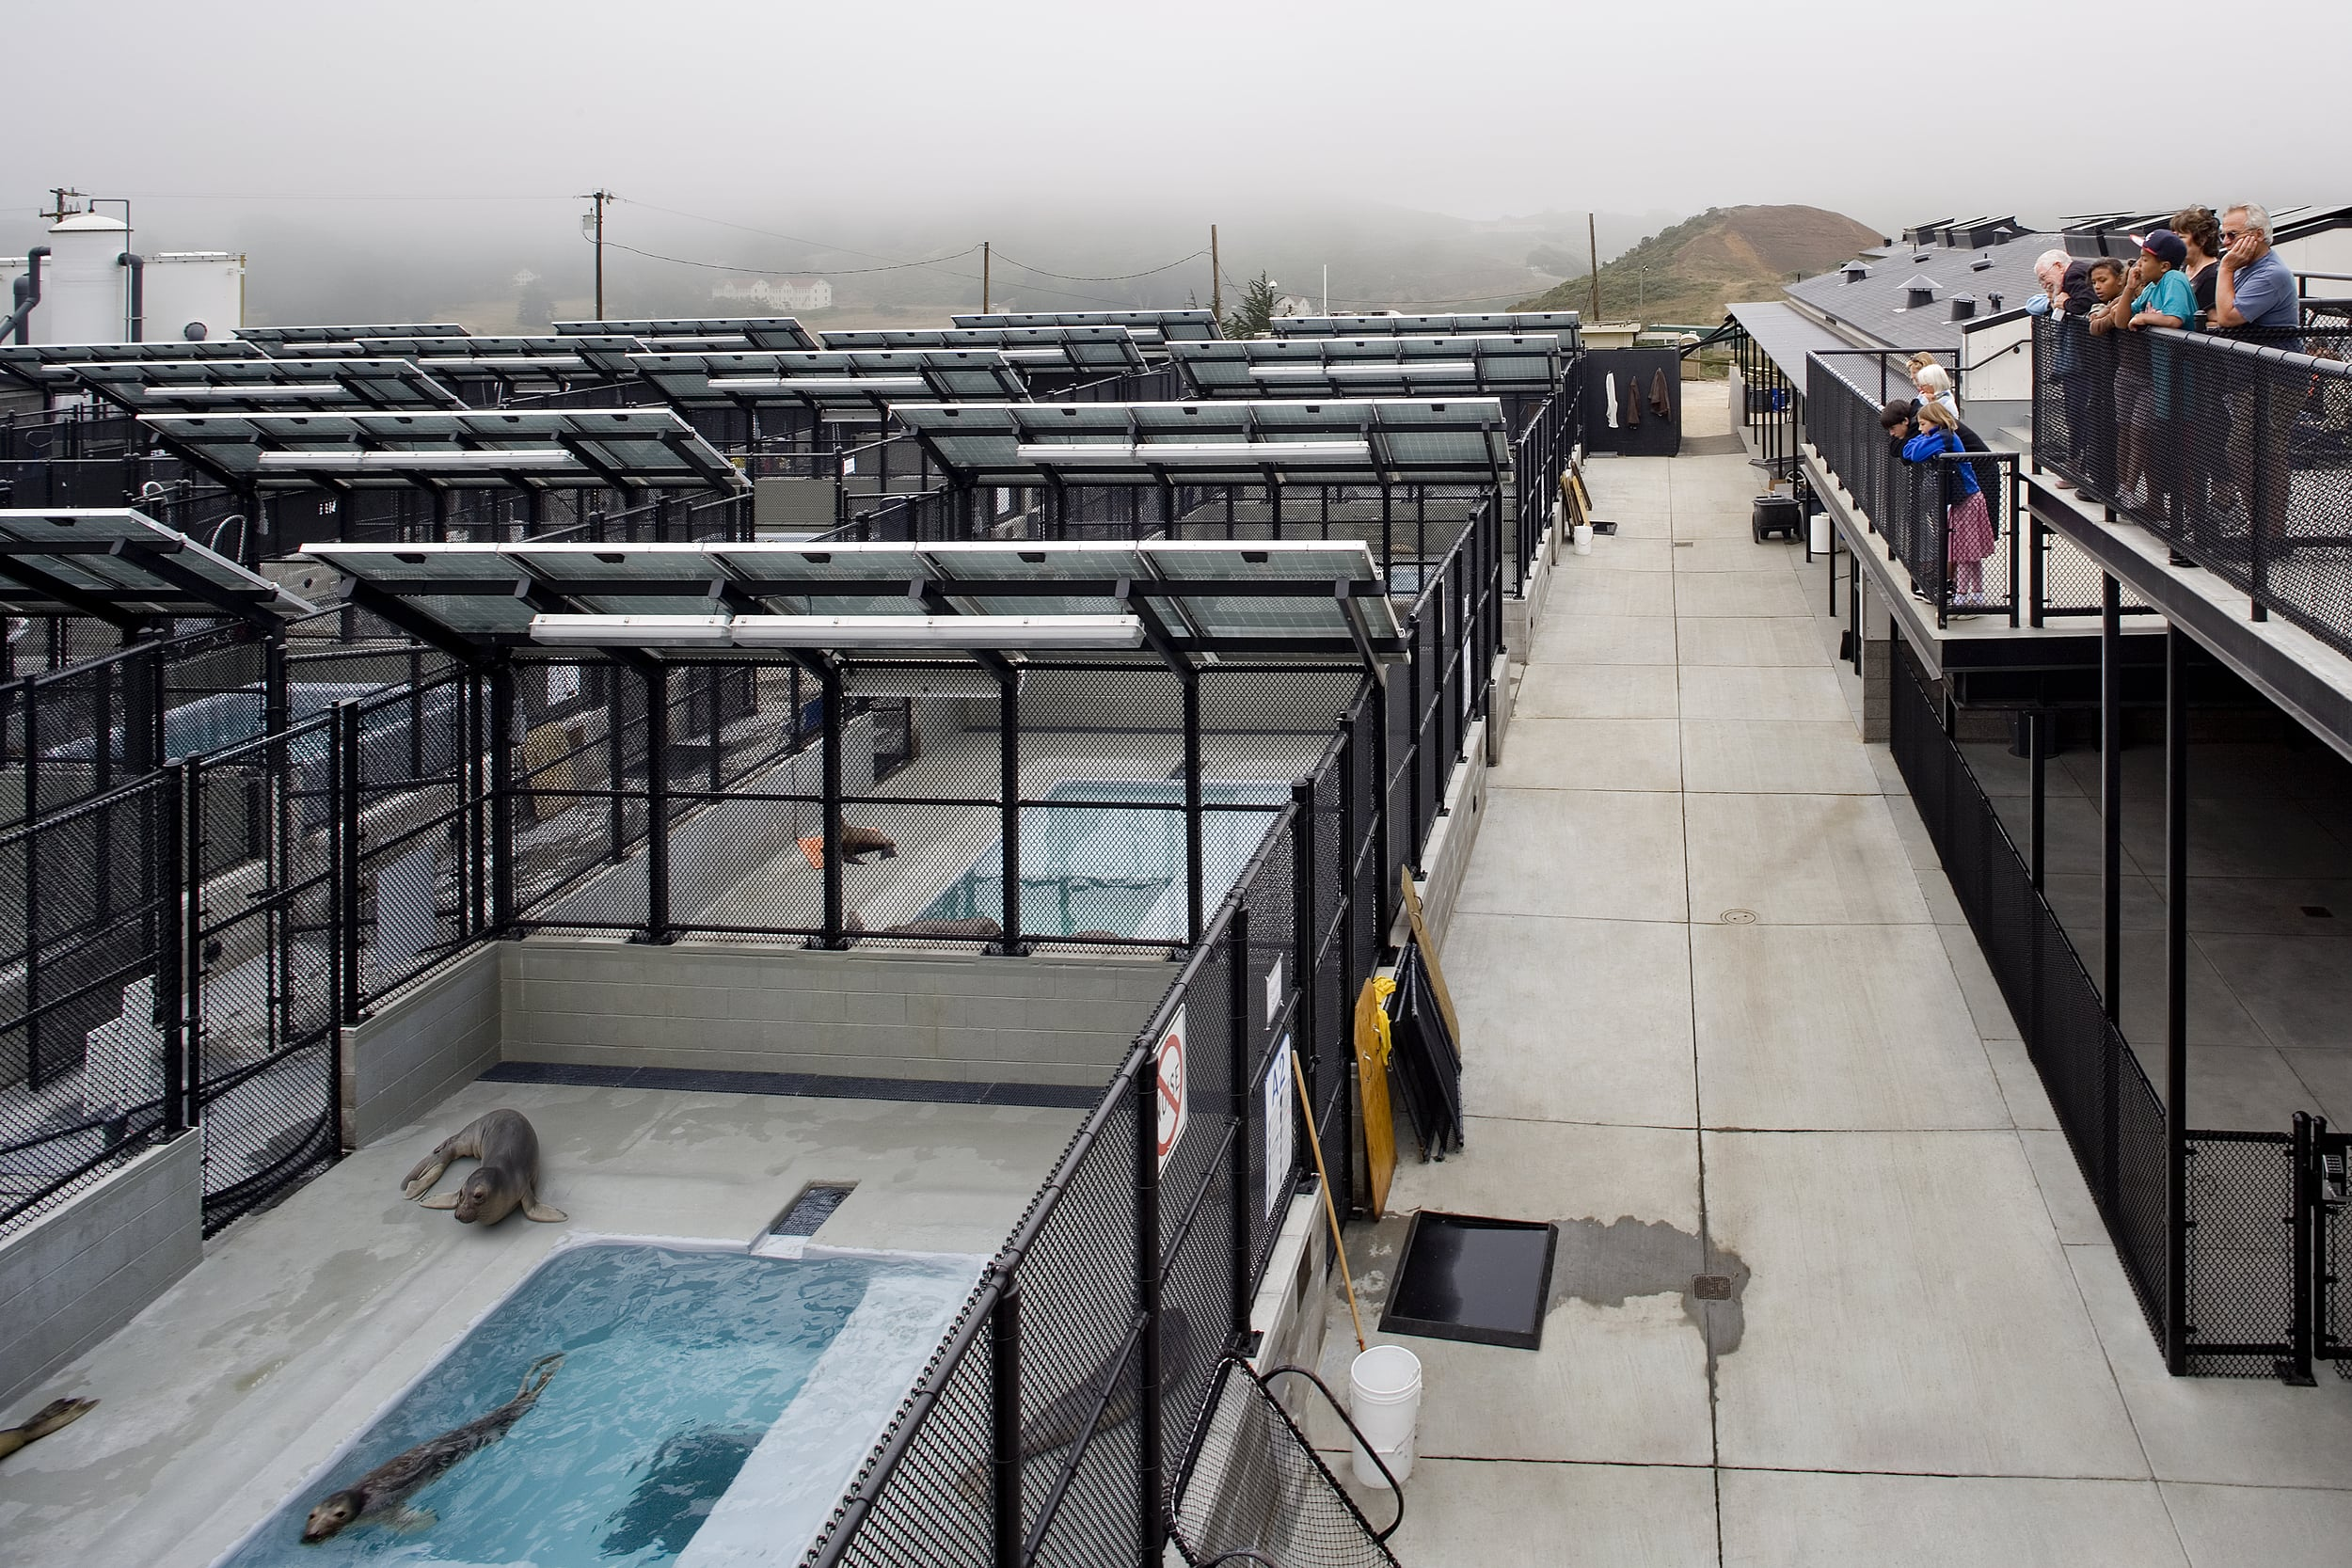 Photo ©David Wakely / The Marine Mammal Center